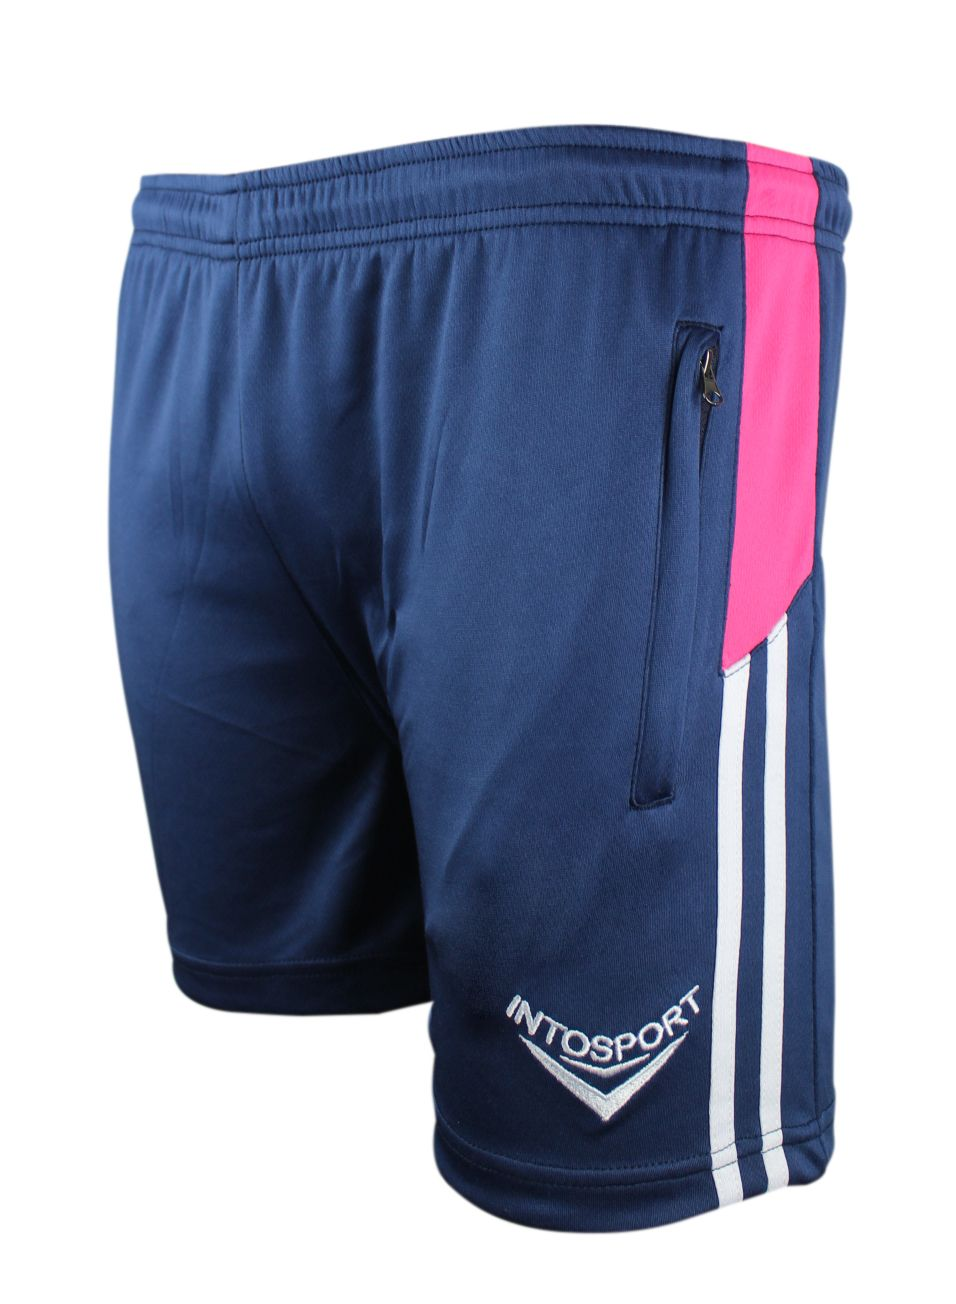 NAVY LEISURE SHORTS SIDE.jpg